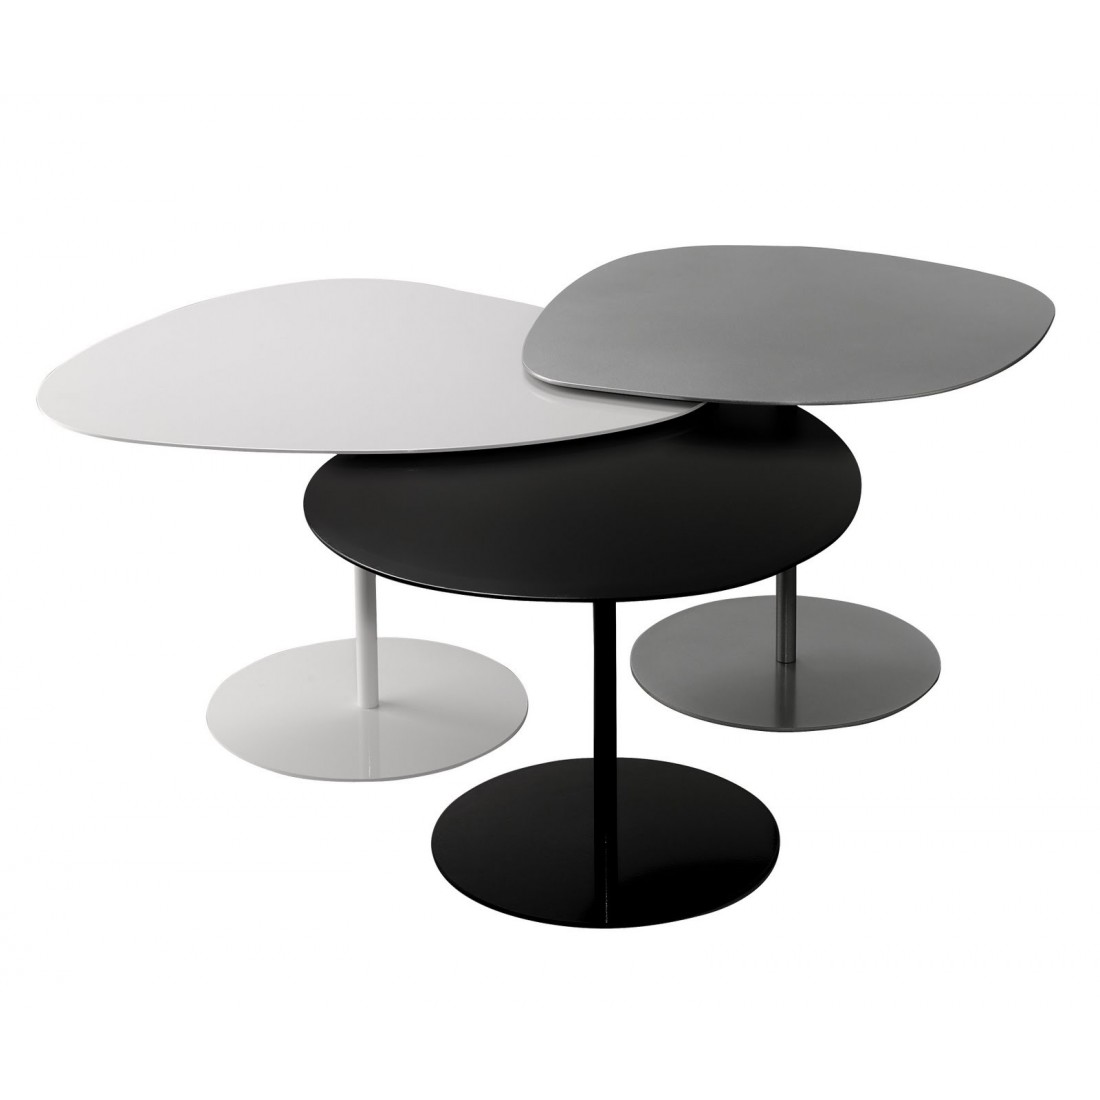 Tables basse galets en aluminium lot de 3 mati re grise - Table basse pliante pas cher ...